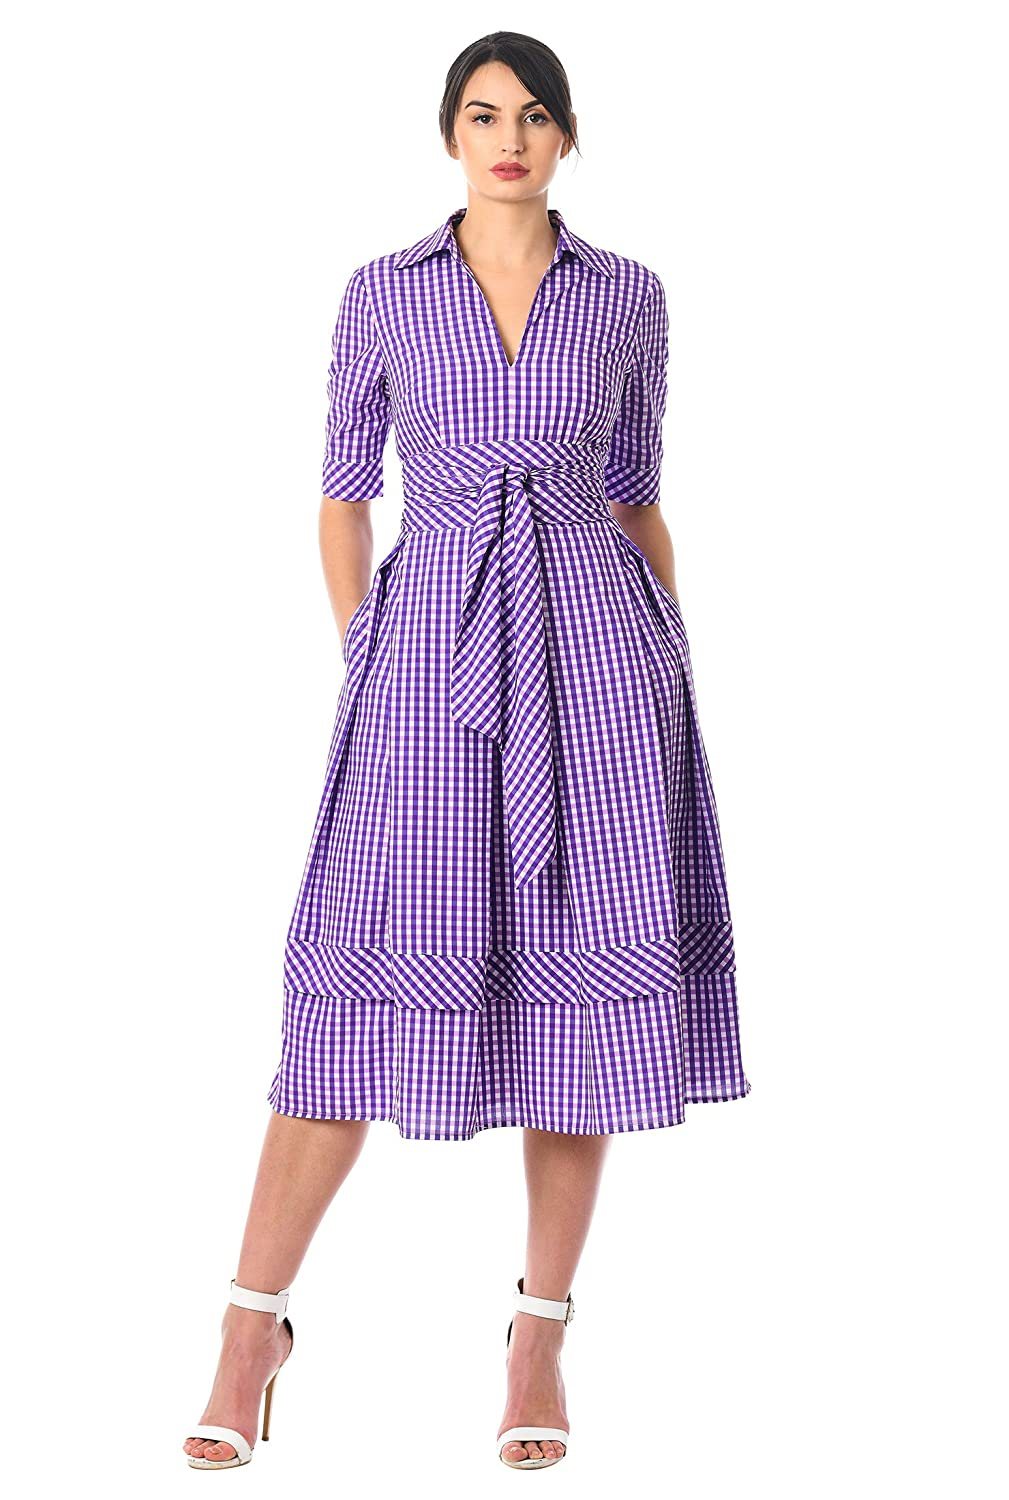 1940s Style Dresses | 40s Dress, Swing Dress eShakti Womens Obi Belt Gingham Check Print Crepe Dress $74.95 AT vintagedancer.com